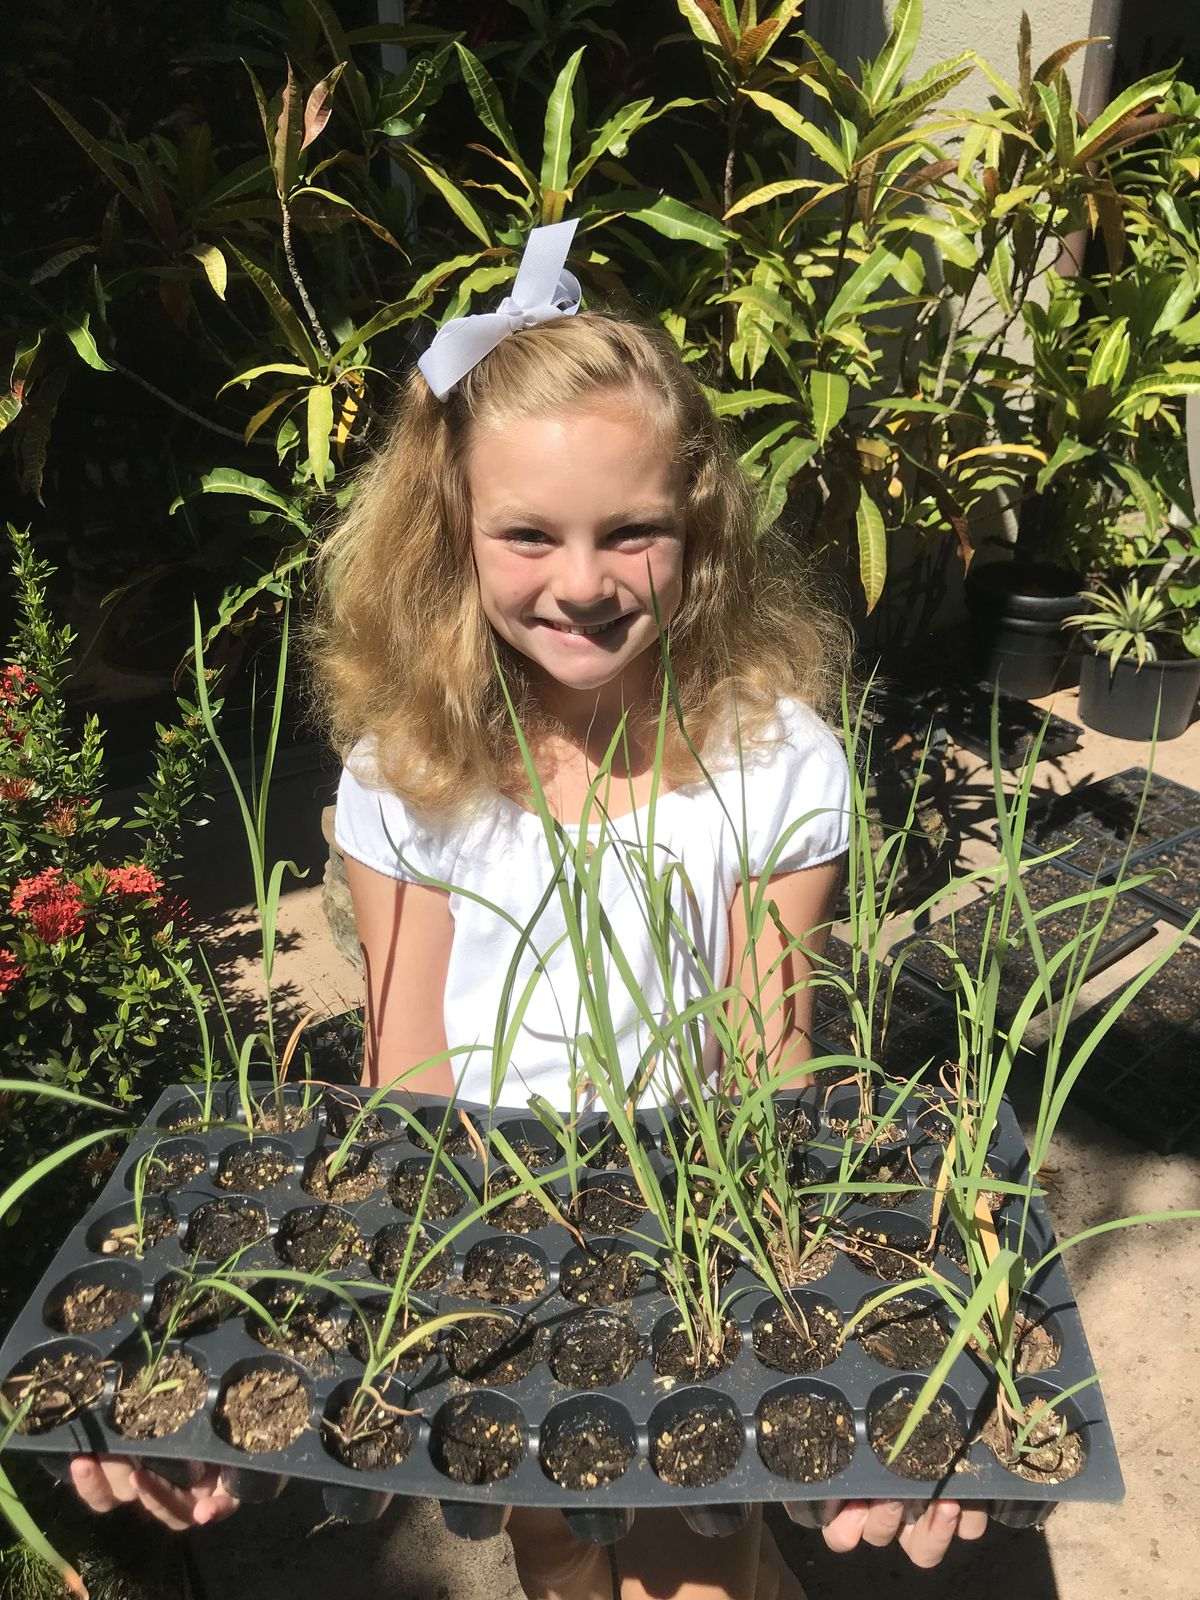 A 'prolific volunteer' grew 900 native plants to help save coral reefs. She's 10.